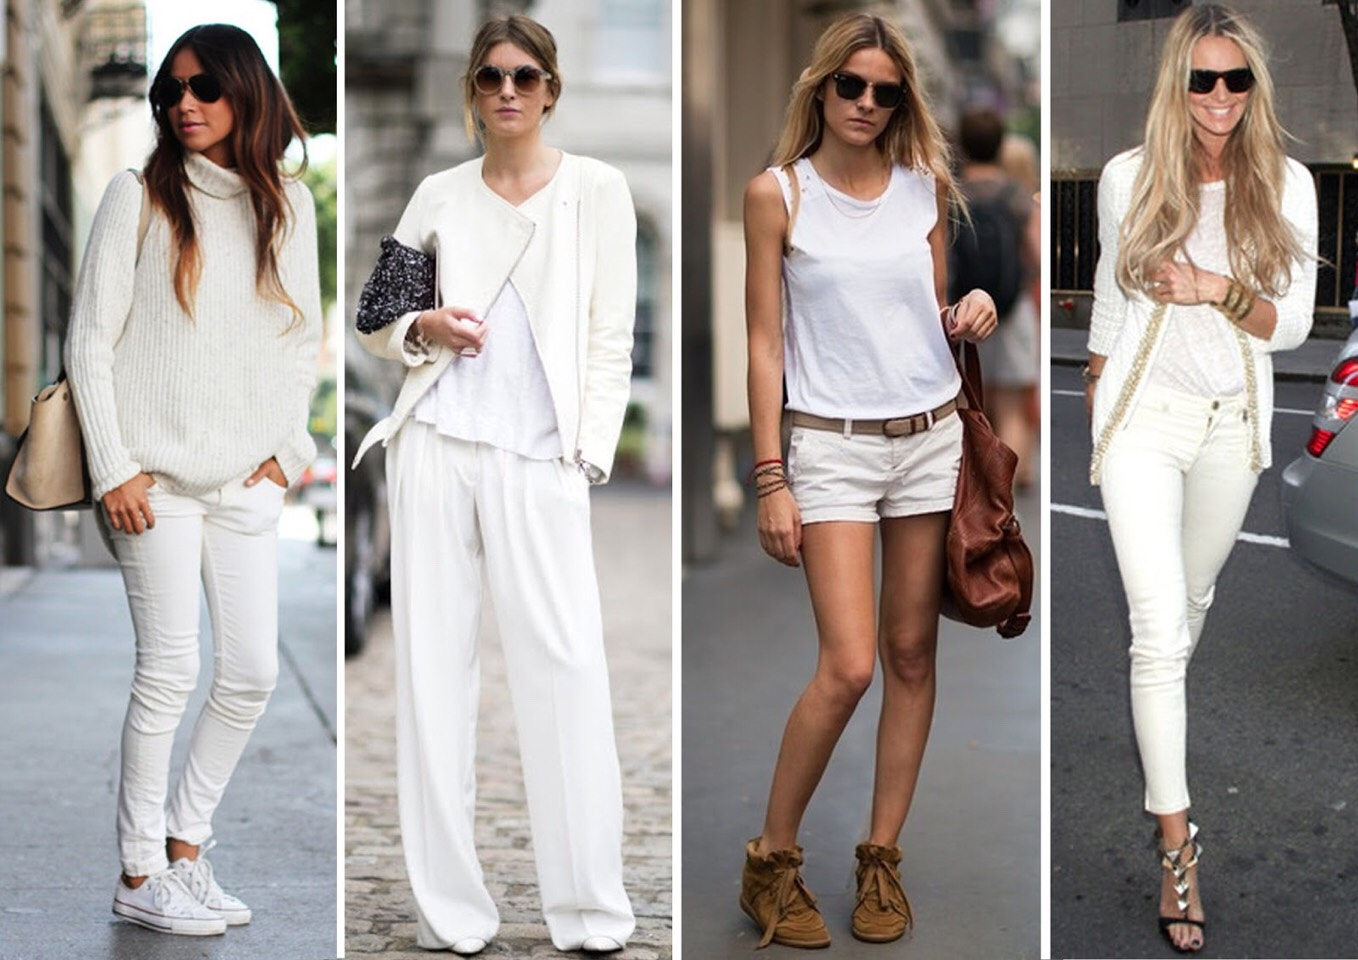 All white outfits Wearing head-to-toe white has come full circle—literally you can wear it year-round. This season, focus on different ways you can mix it up with layers, shades, textures, prints, and opacity.